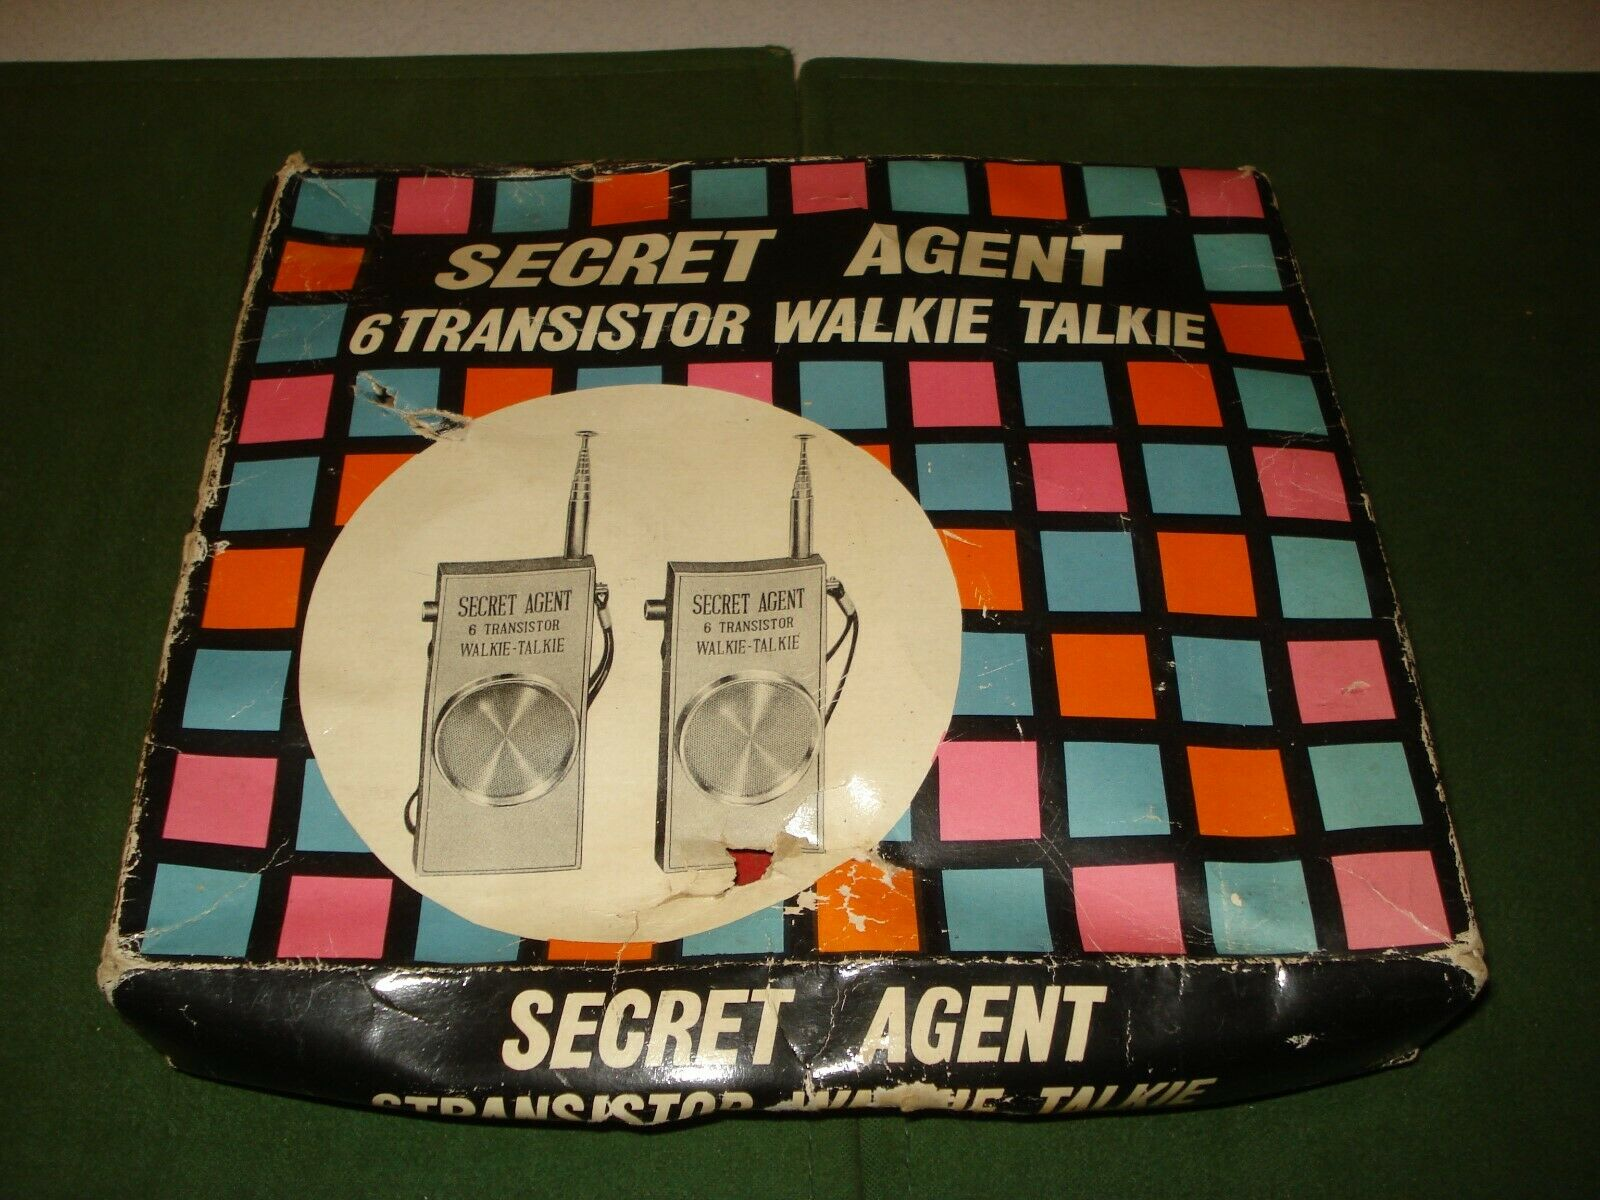 1966 SECRET AGENT WALKIE TALKIE w BOX, JAMES BOND - MAN FROM UNCLE LIKE